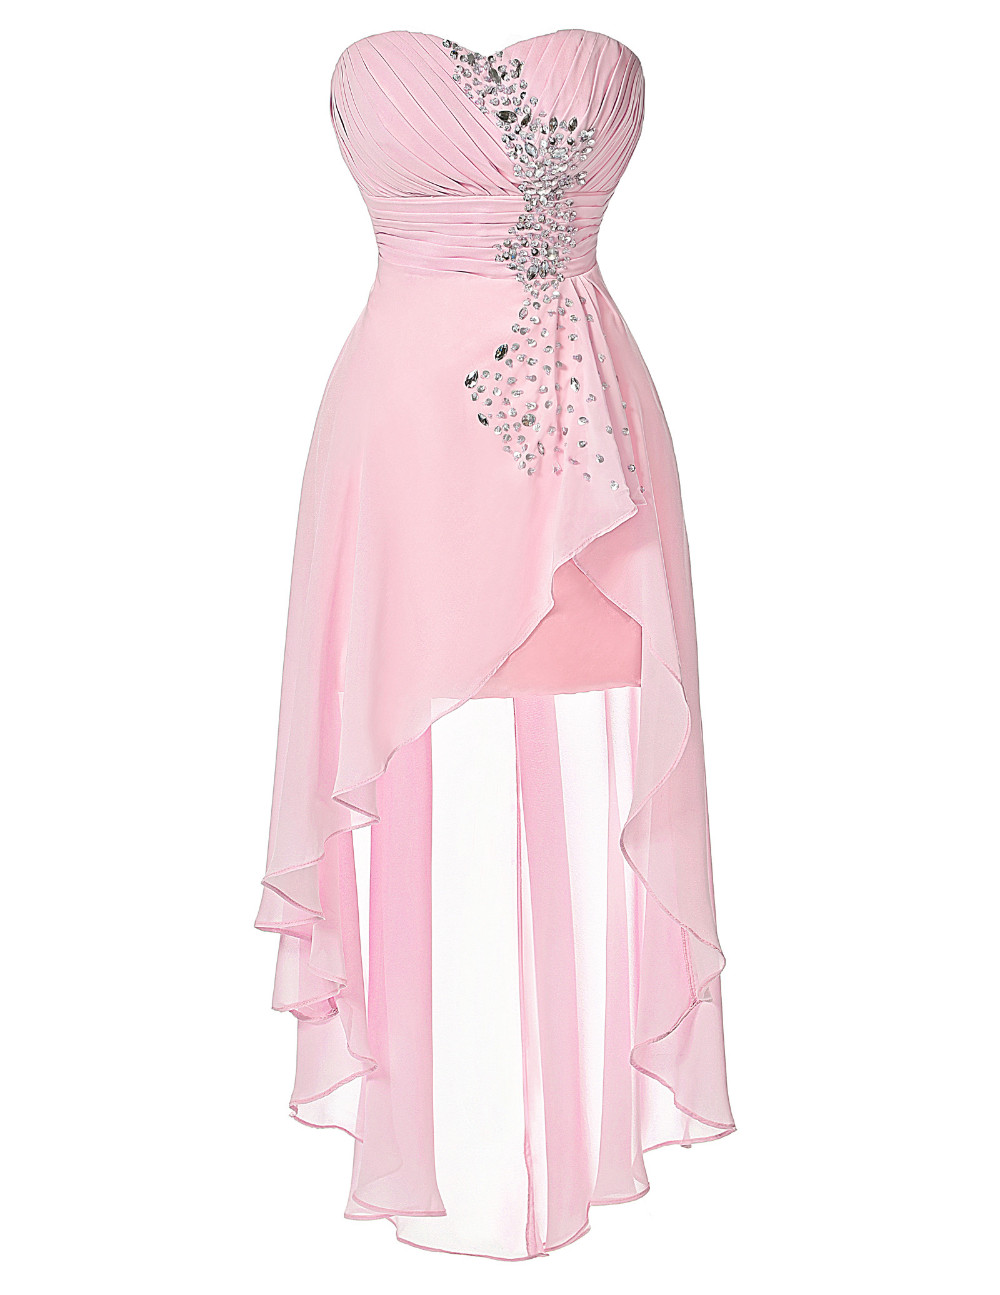 High Low Bridesmaid Dress 2017 Short Front Long Back Prom Gown Strapless Bead Sequin Pink Turquoise Bridesmaid Dress Grace Karin 7